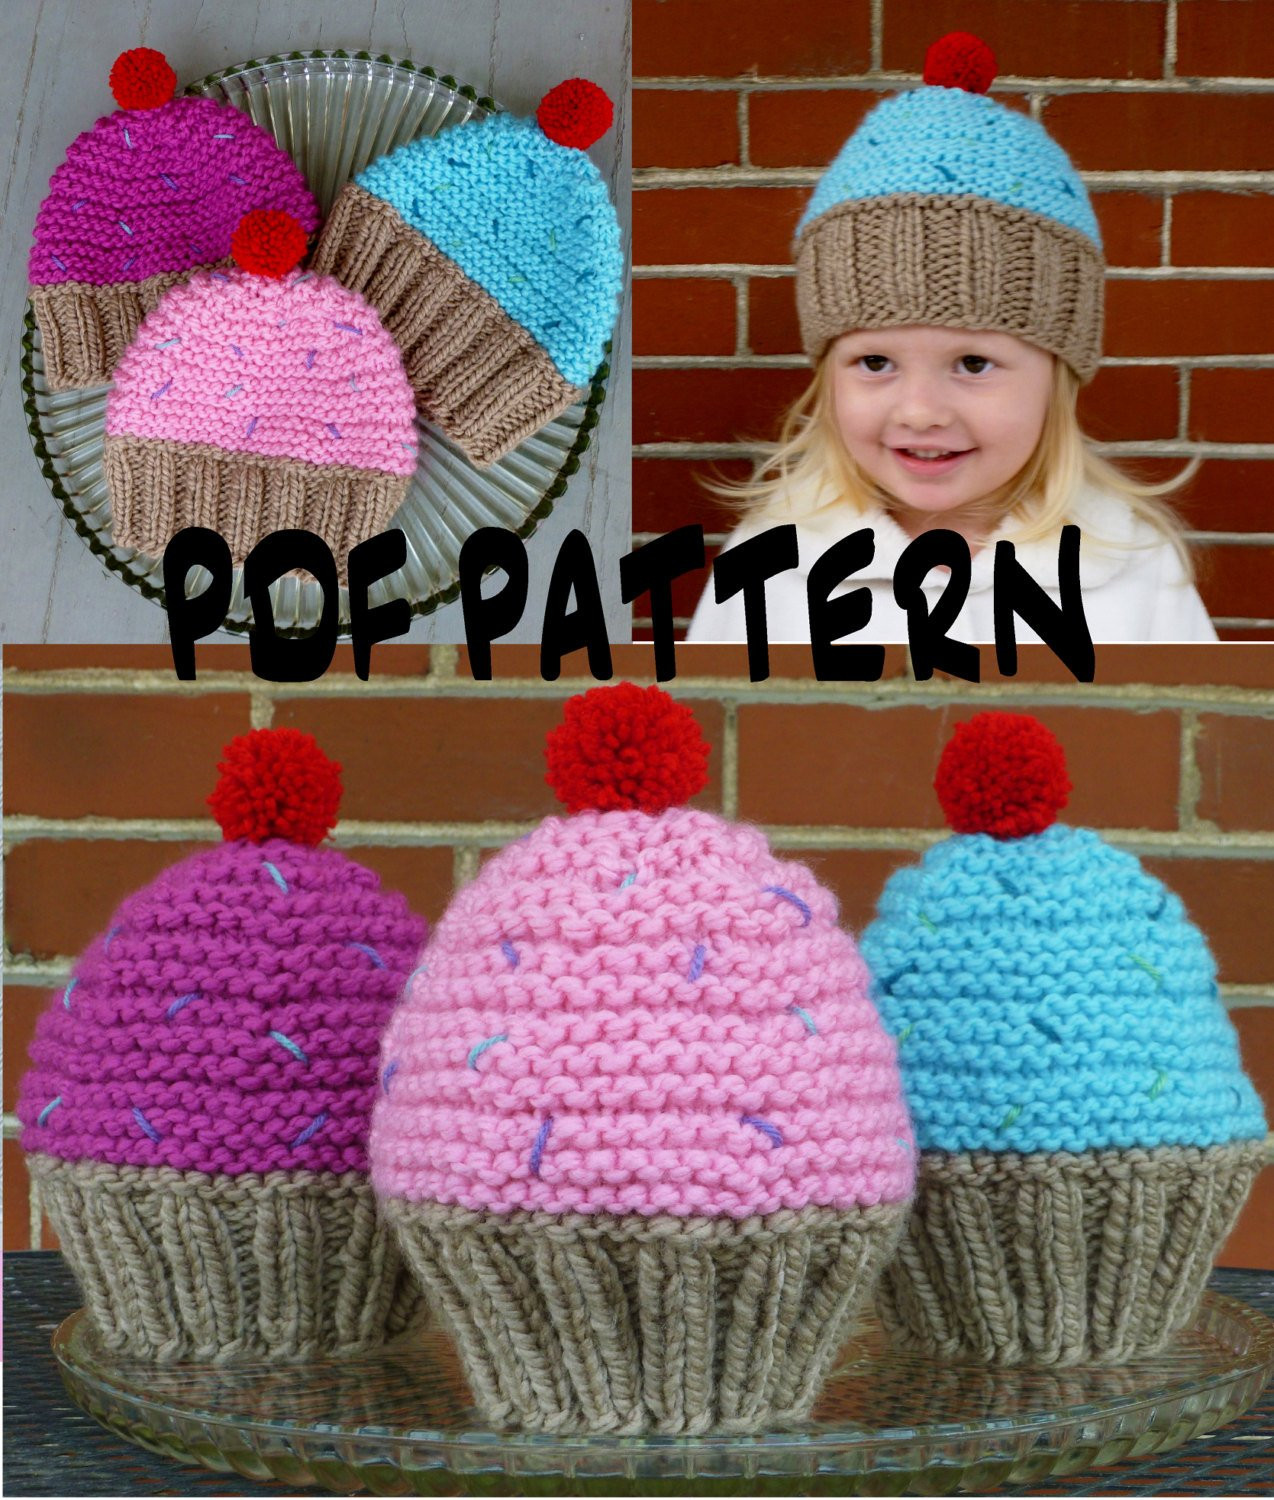 Knitting Patterns for toddlers Lovely Instant Download Cupcake Hat Knitting Pattern Knit Cupcake Of Awesome 49 Images Knitting Patterns for toddlers